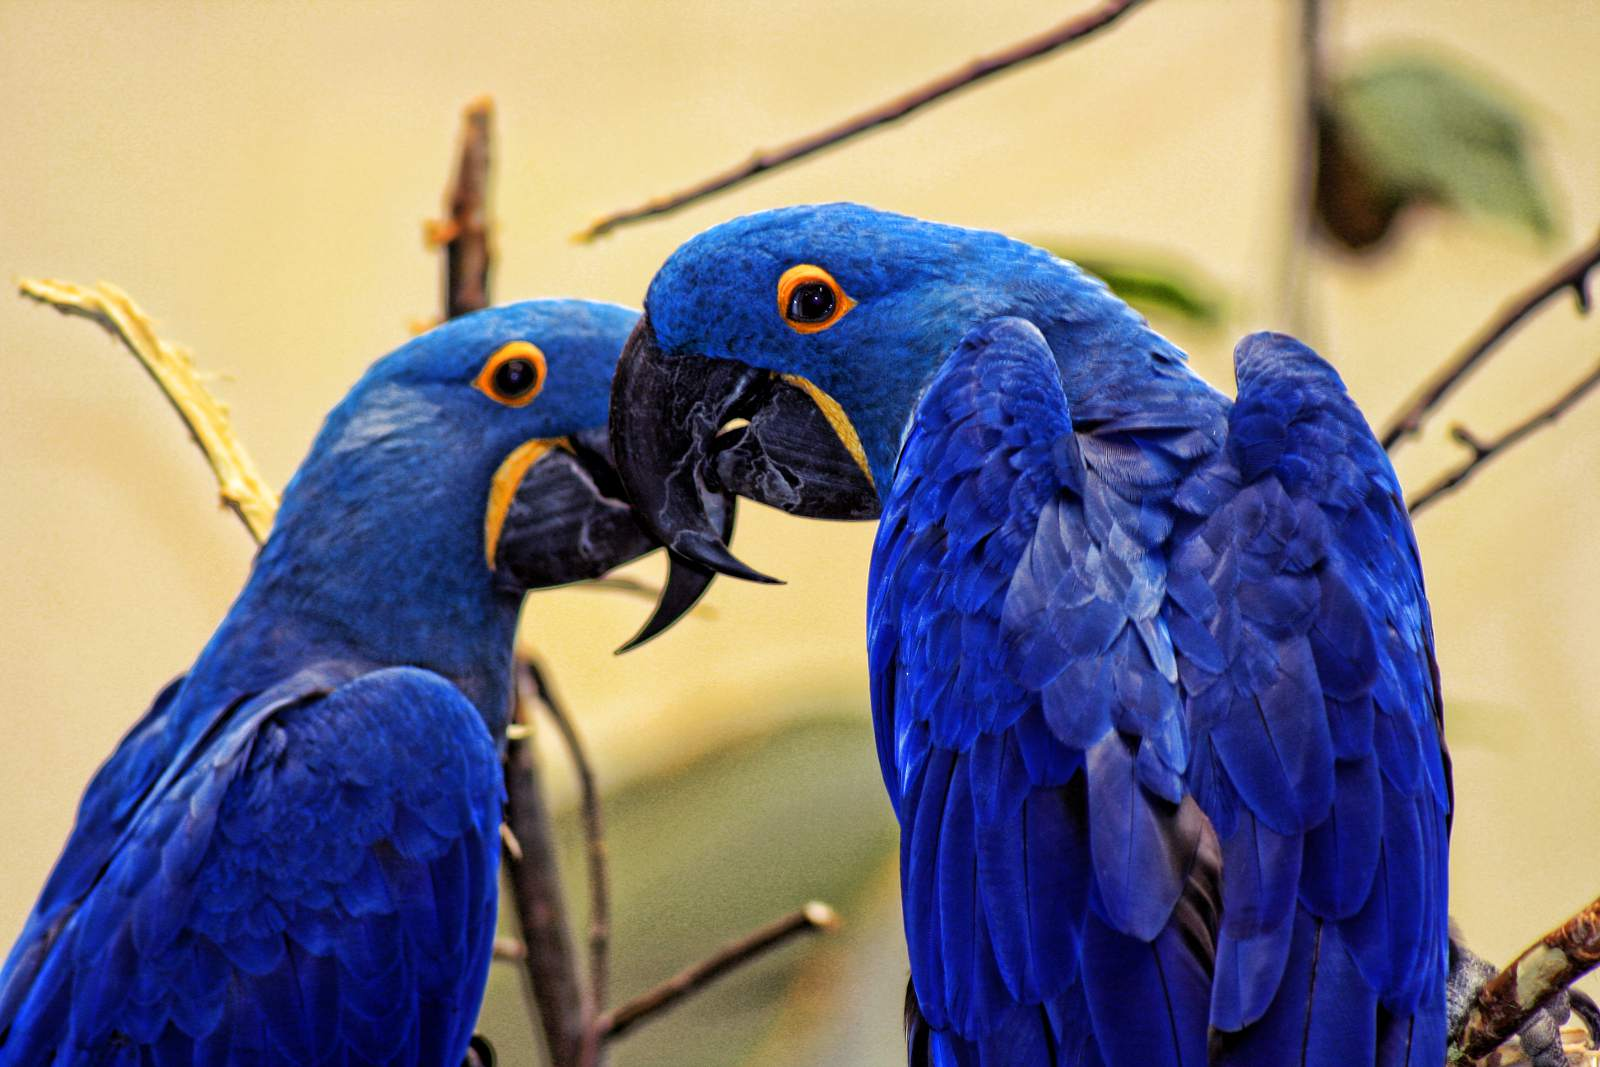 Parrots at the Biodome